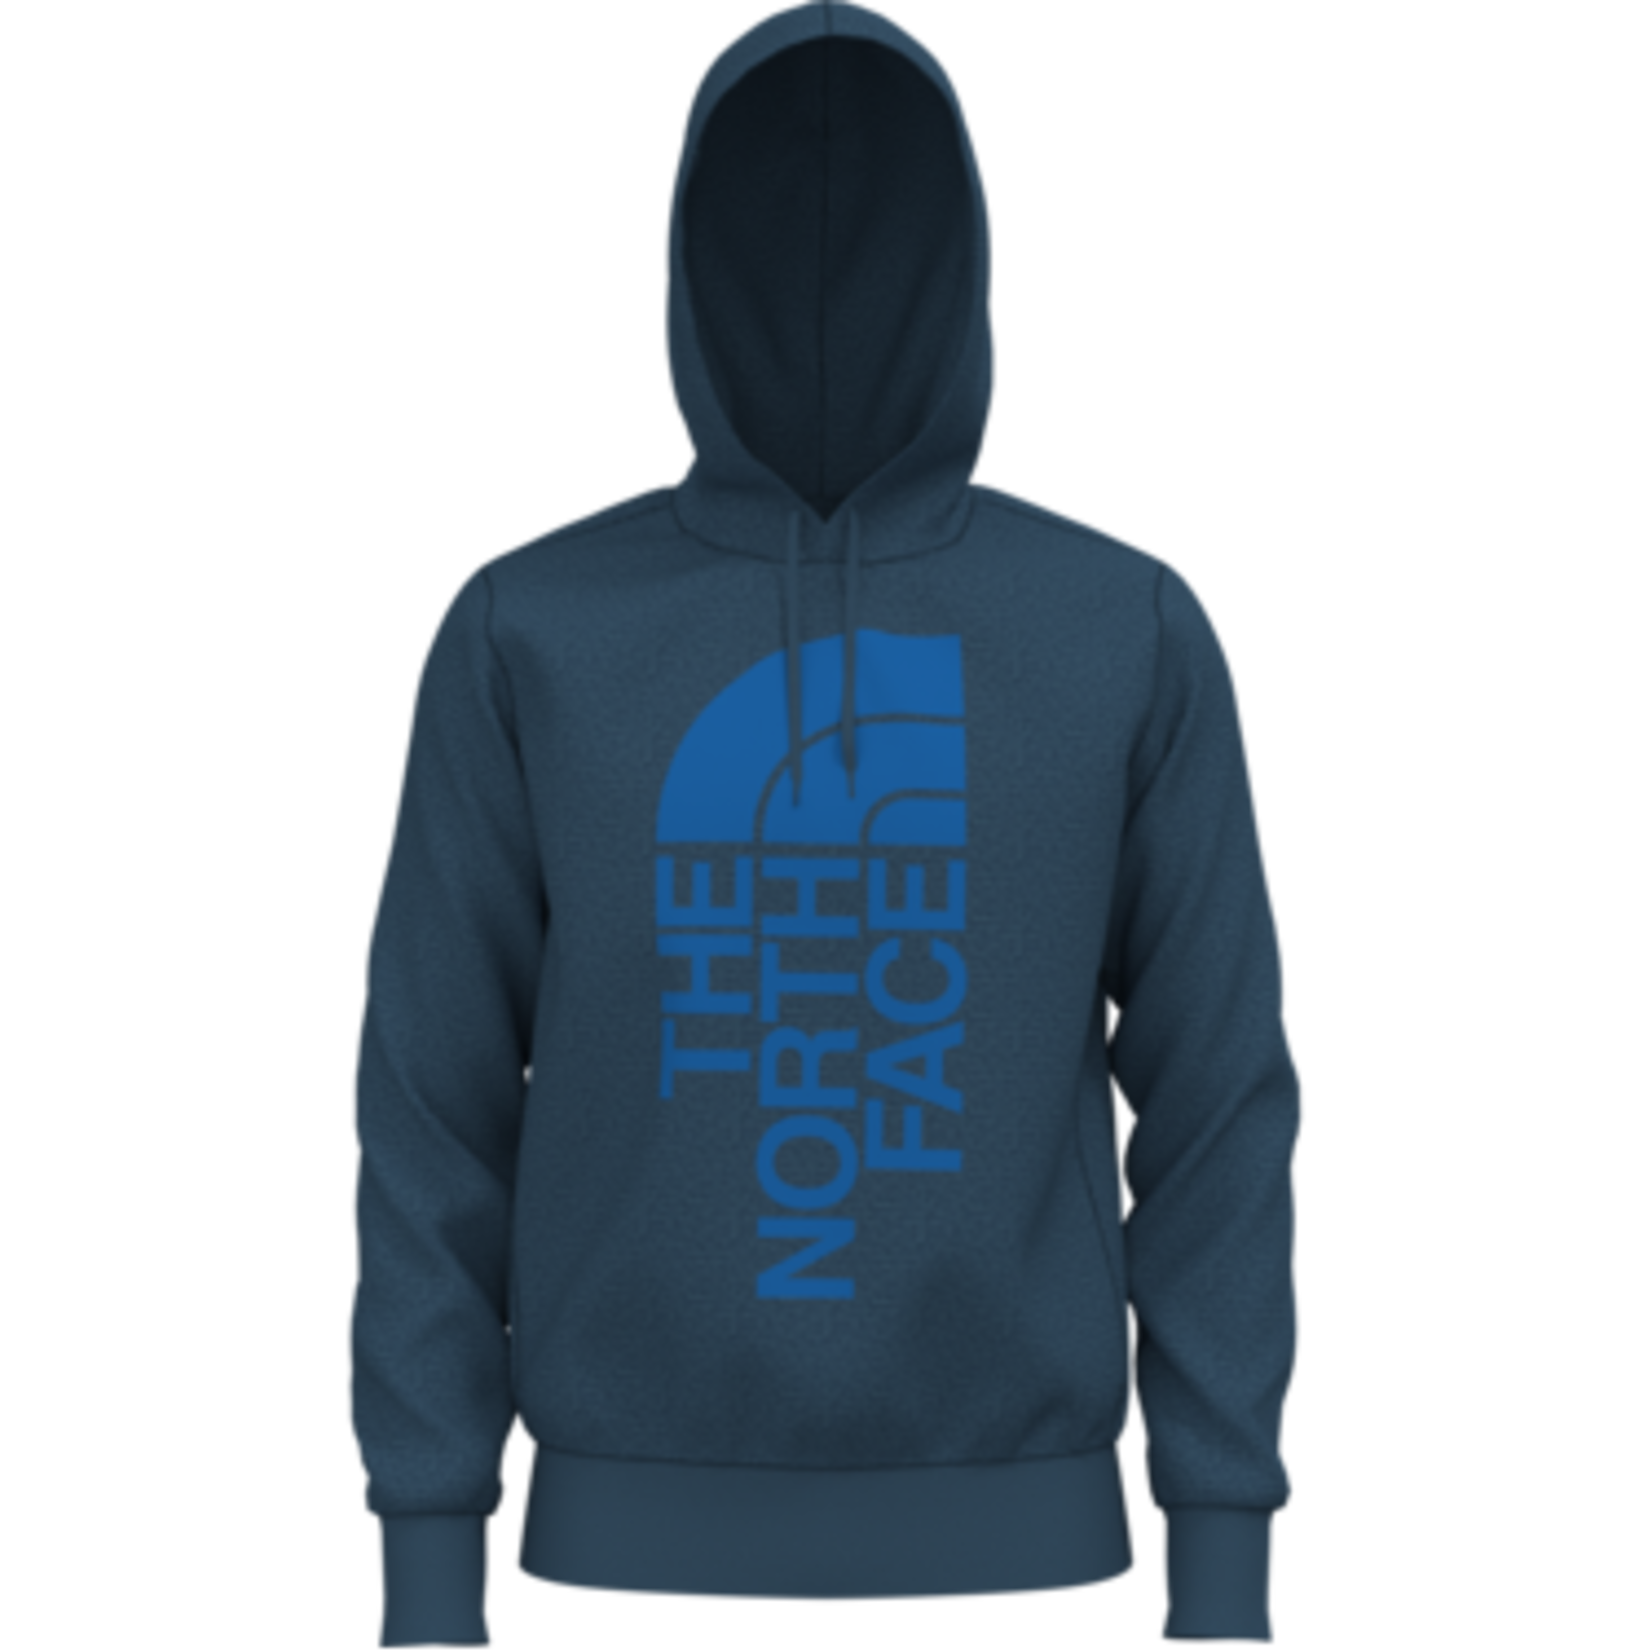 The North Face The North Face Hoodie, 2.0 Trivert Pullover, Mens